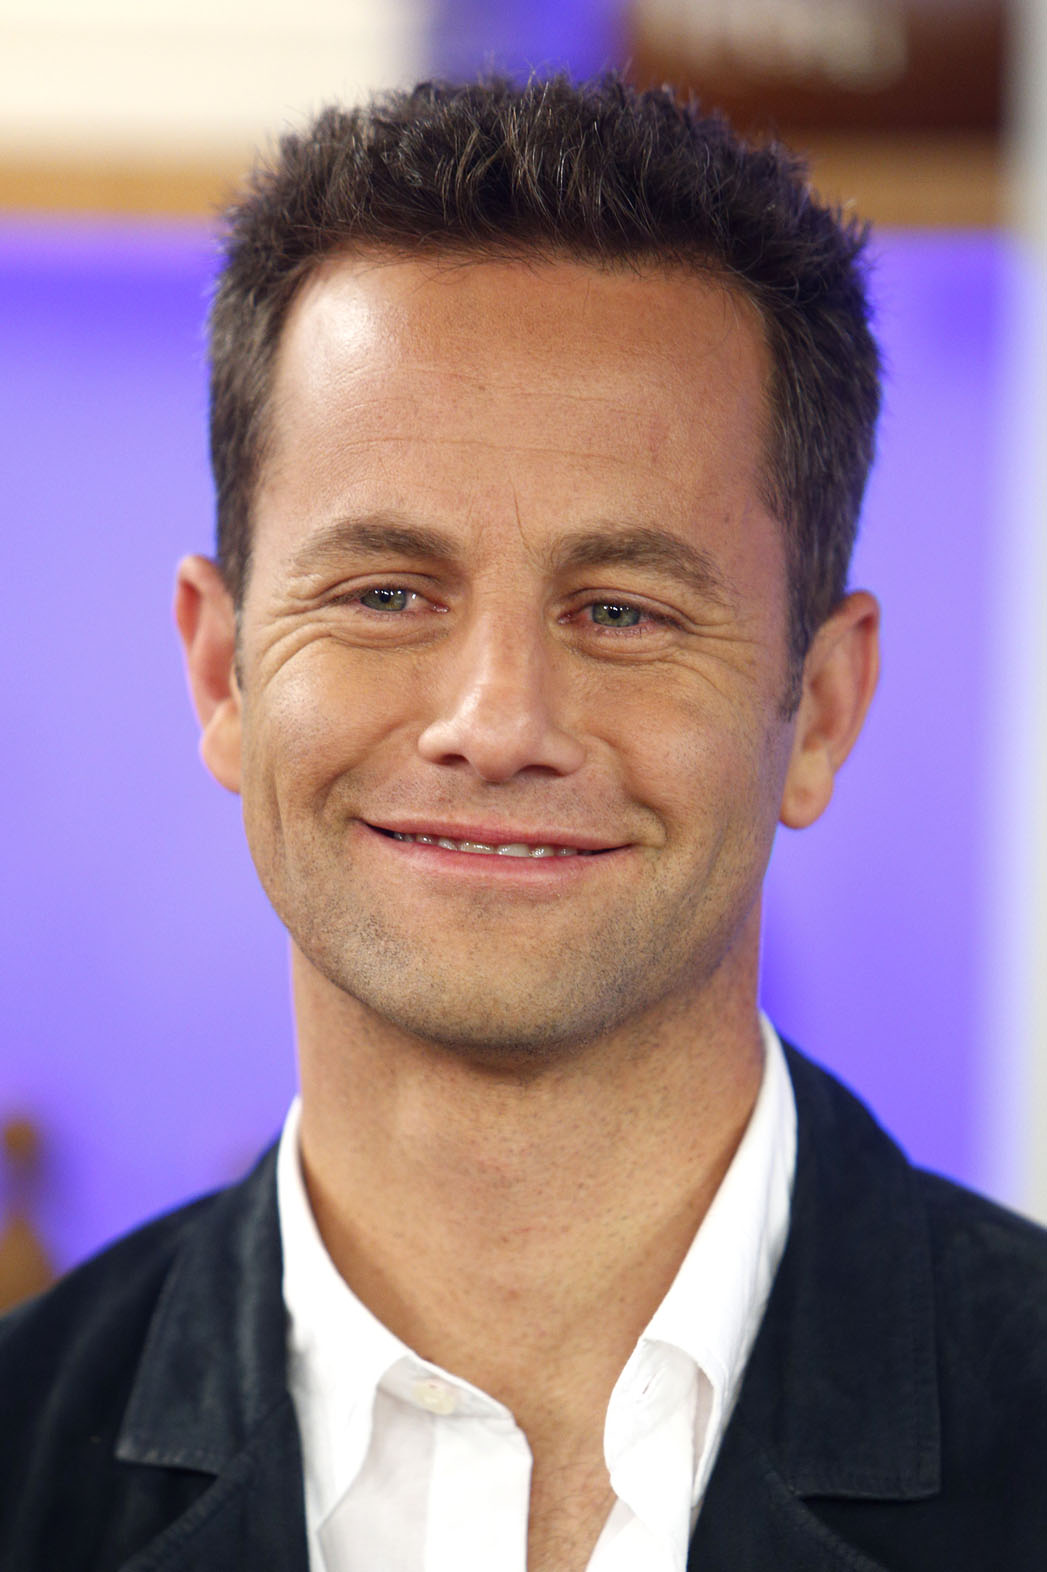 Kirk Cameron Doc 'Unstoppable' Grosses $2 Million in One-Night Live Event |  Hollywood Reporter